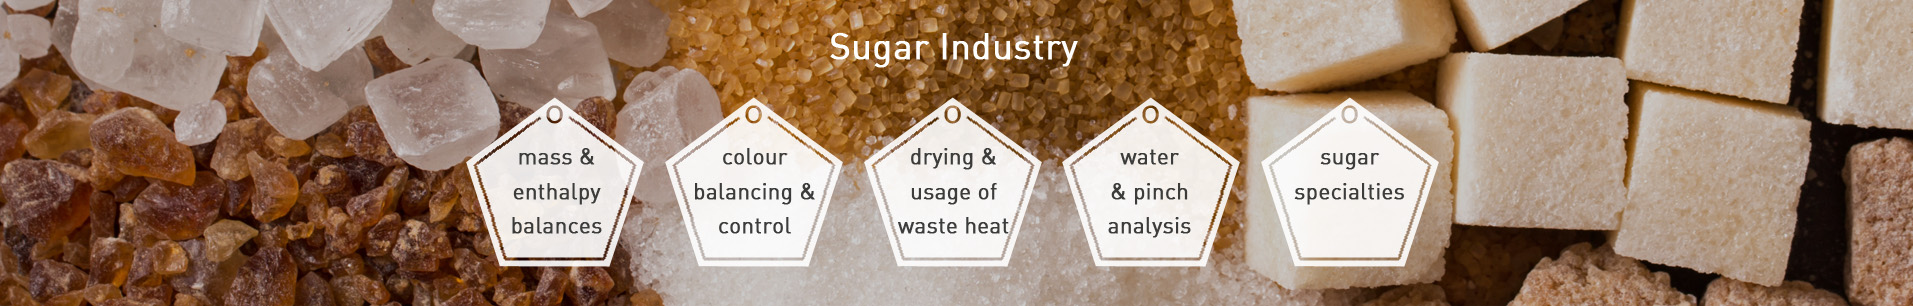 header_sugar_industry